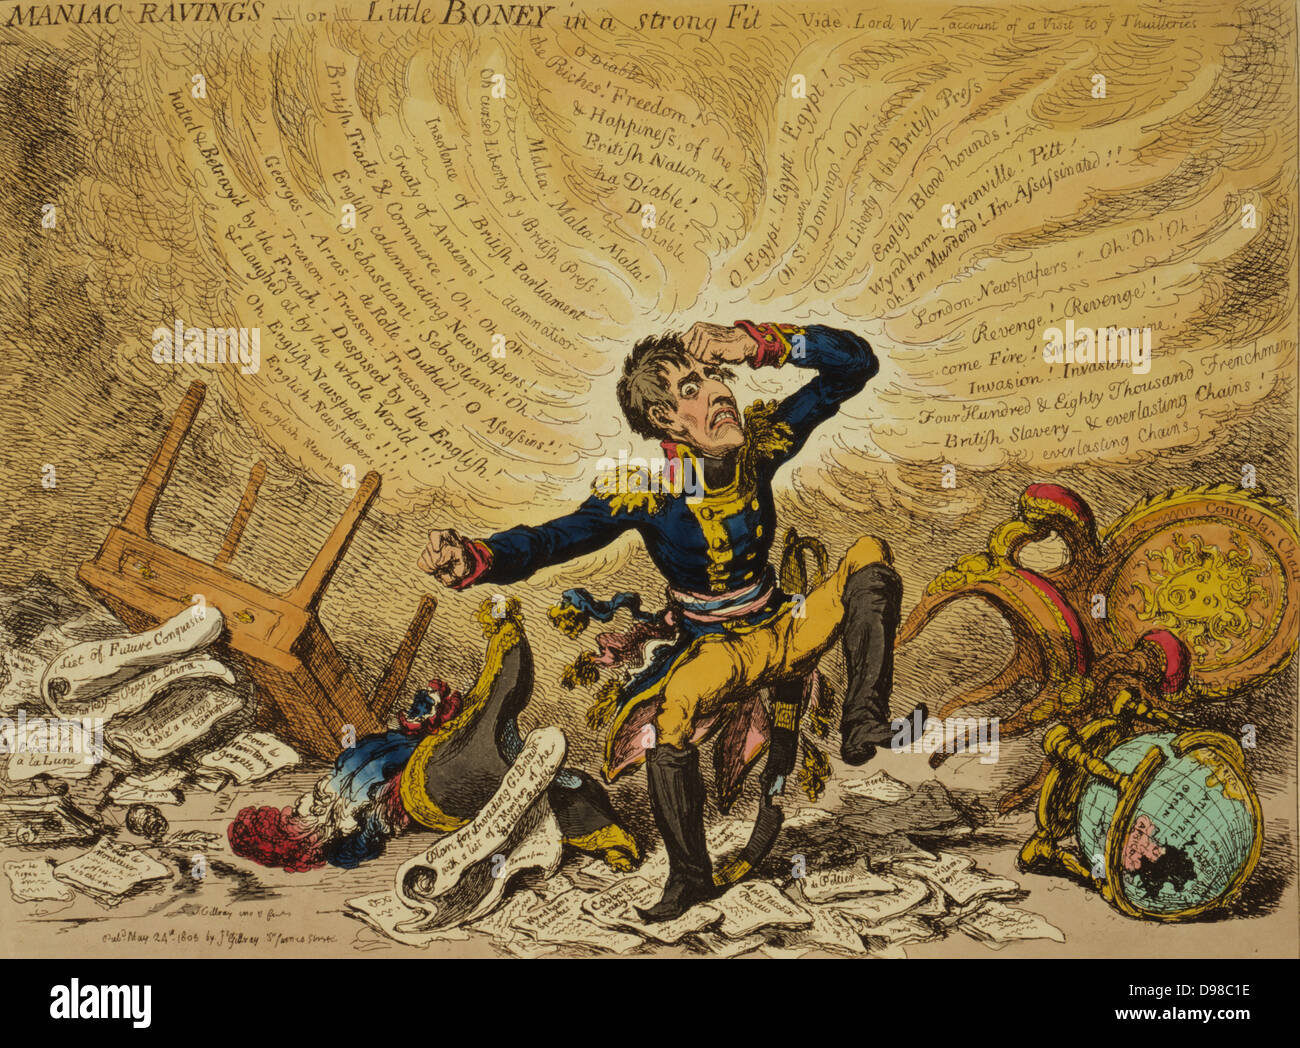 Maniac-raving's-or-Little Boney in a strong fit / Js. Gillray inv. & fect 1803. Creator James Gillray, 1756 - Stock Image